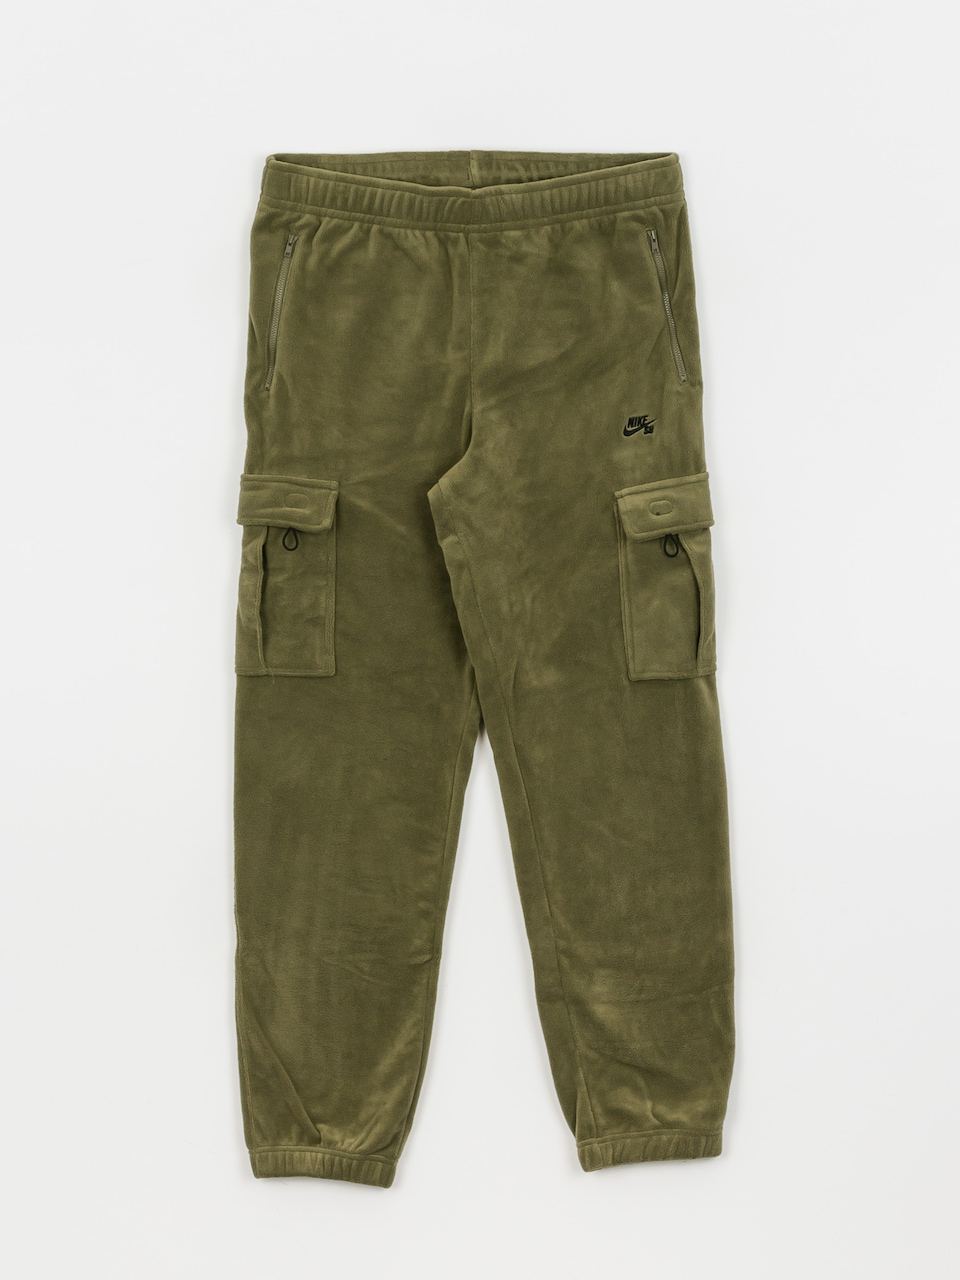 florero Rana Sobrio  Nike SB Novelty Cargo Pants (medium olive/electro orange/black)